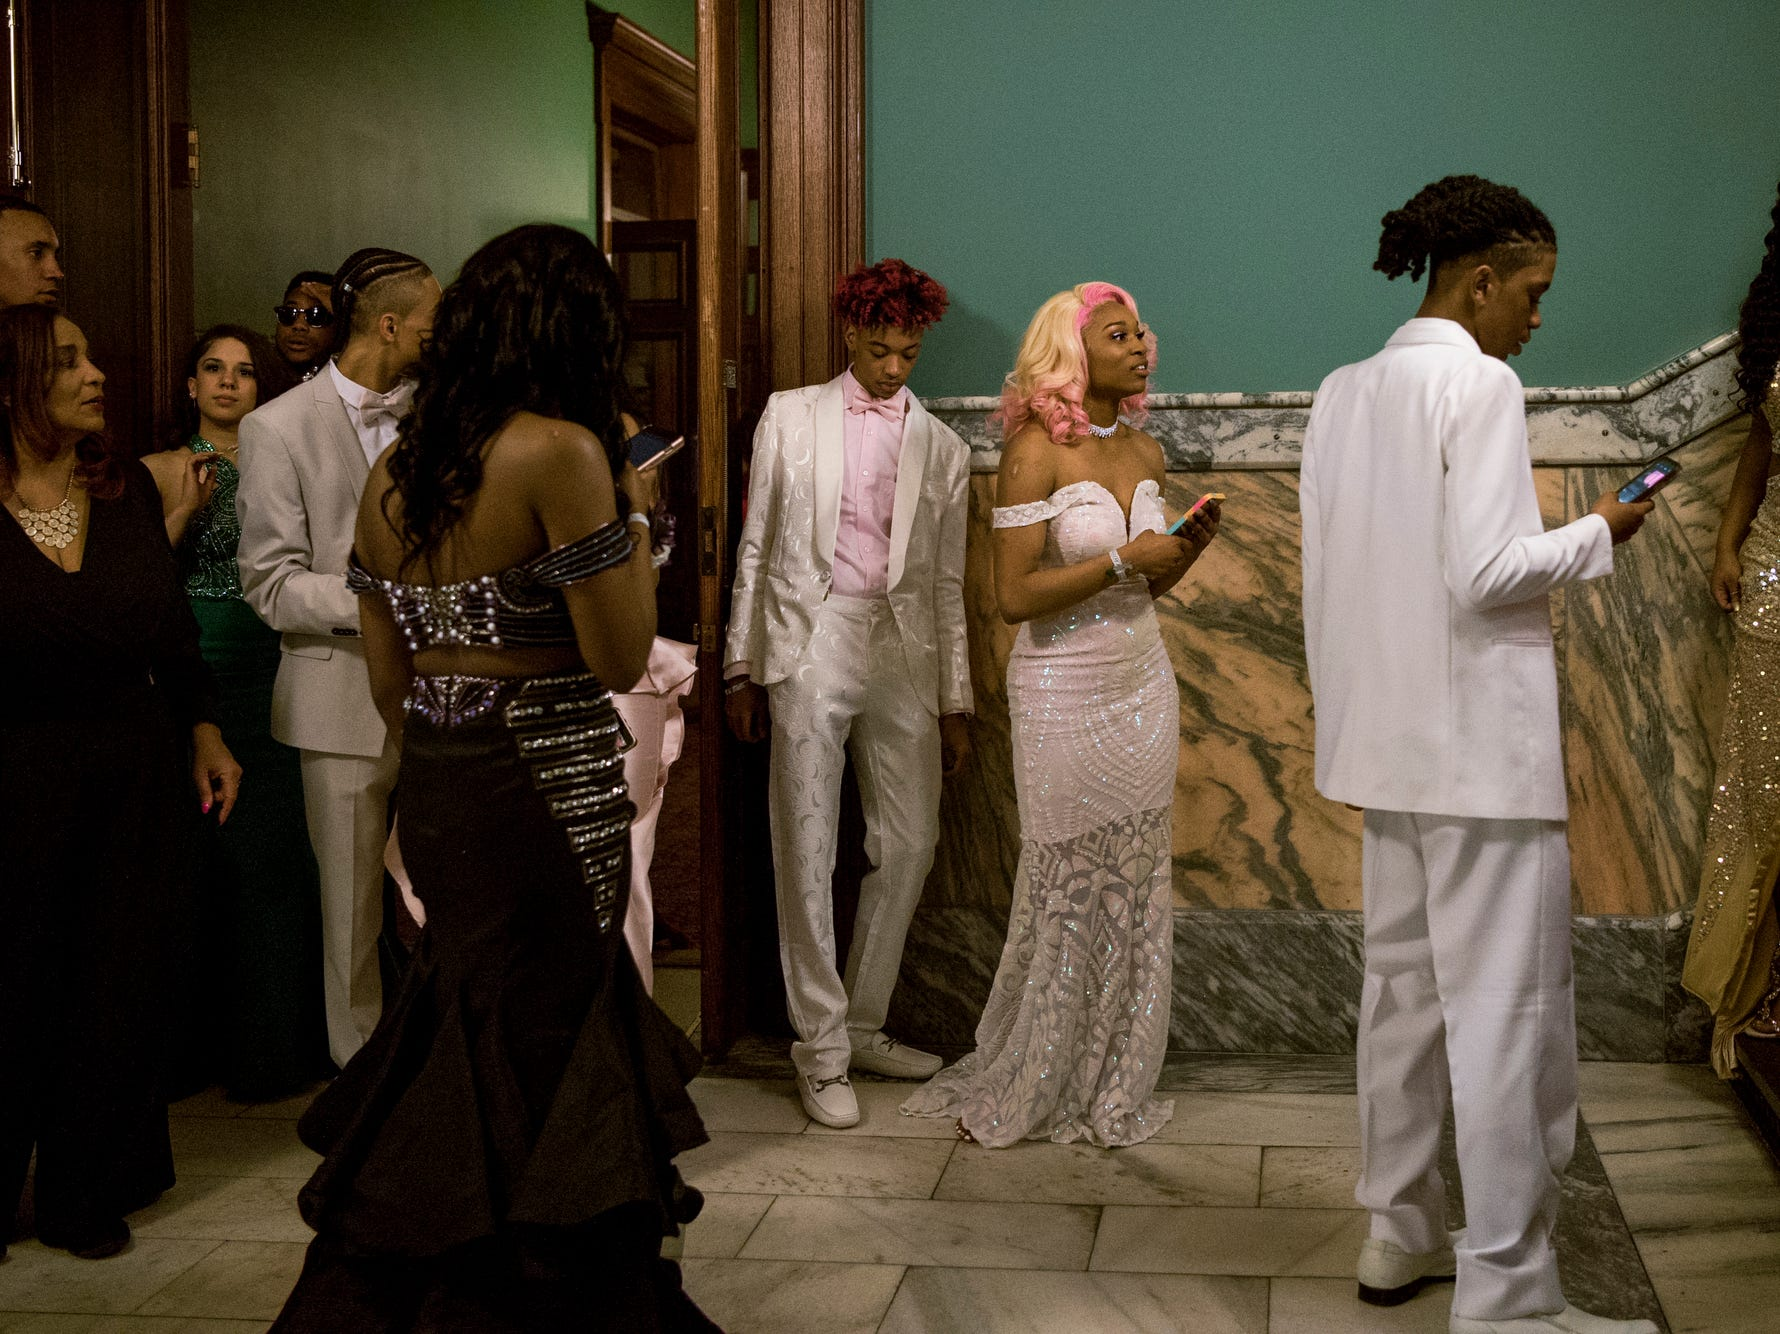 Bosse High School students prepare to line up on the stairs for a group photos during prom at the Old Vanderburgh County Courthouse in downtown Evansville, Ind., Saturday, April 6, 2019.